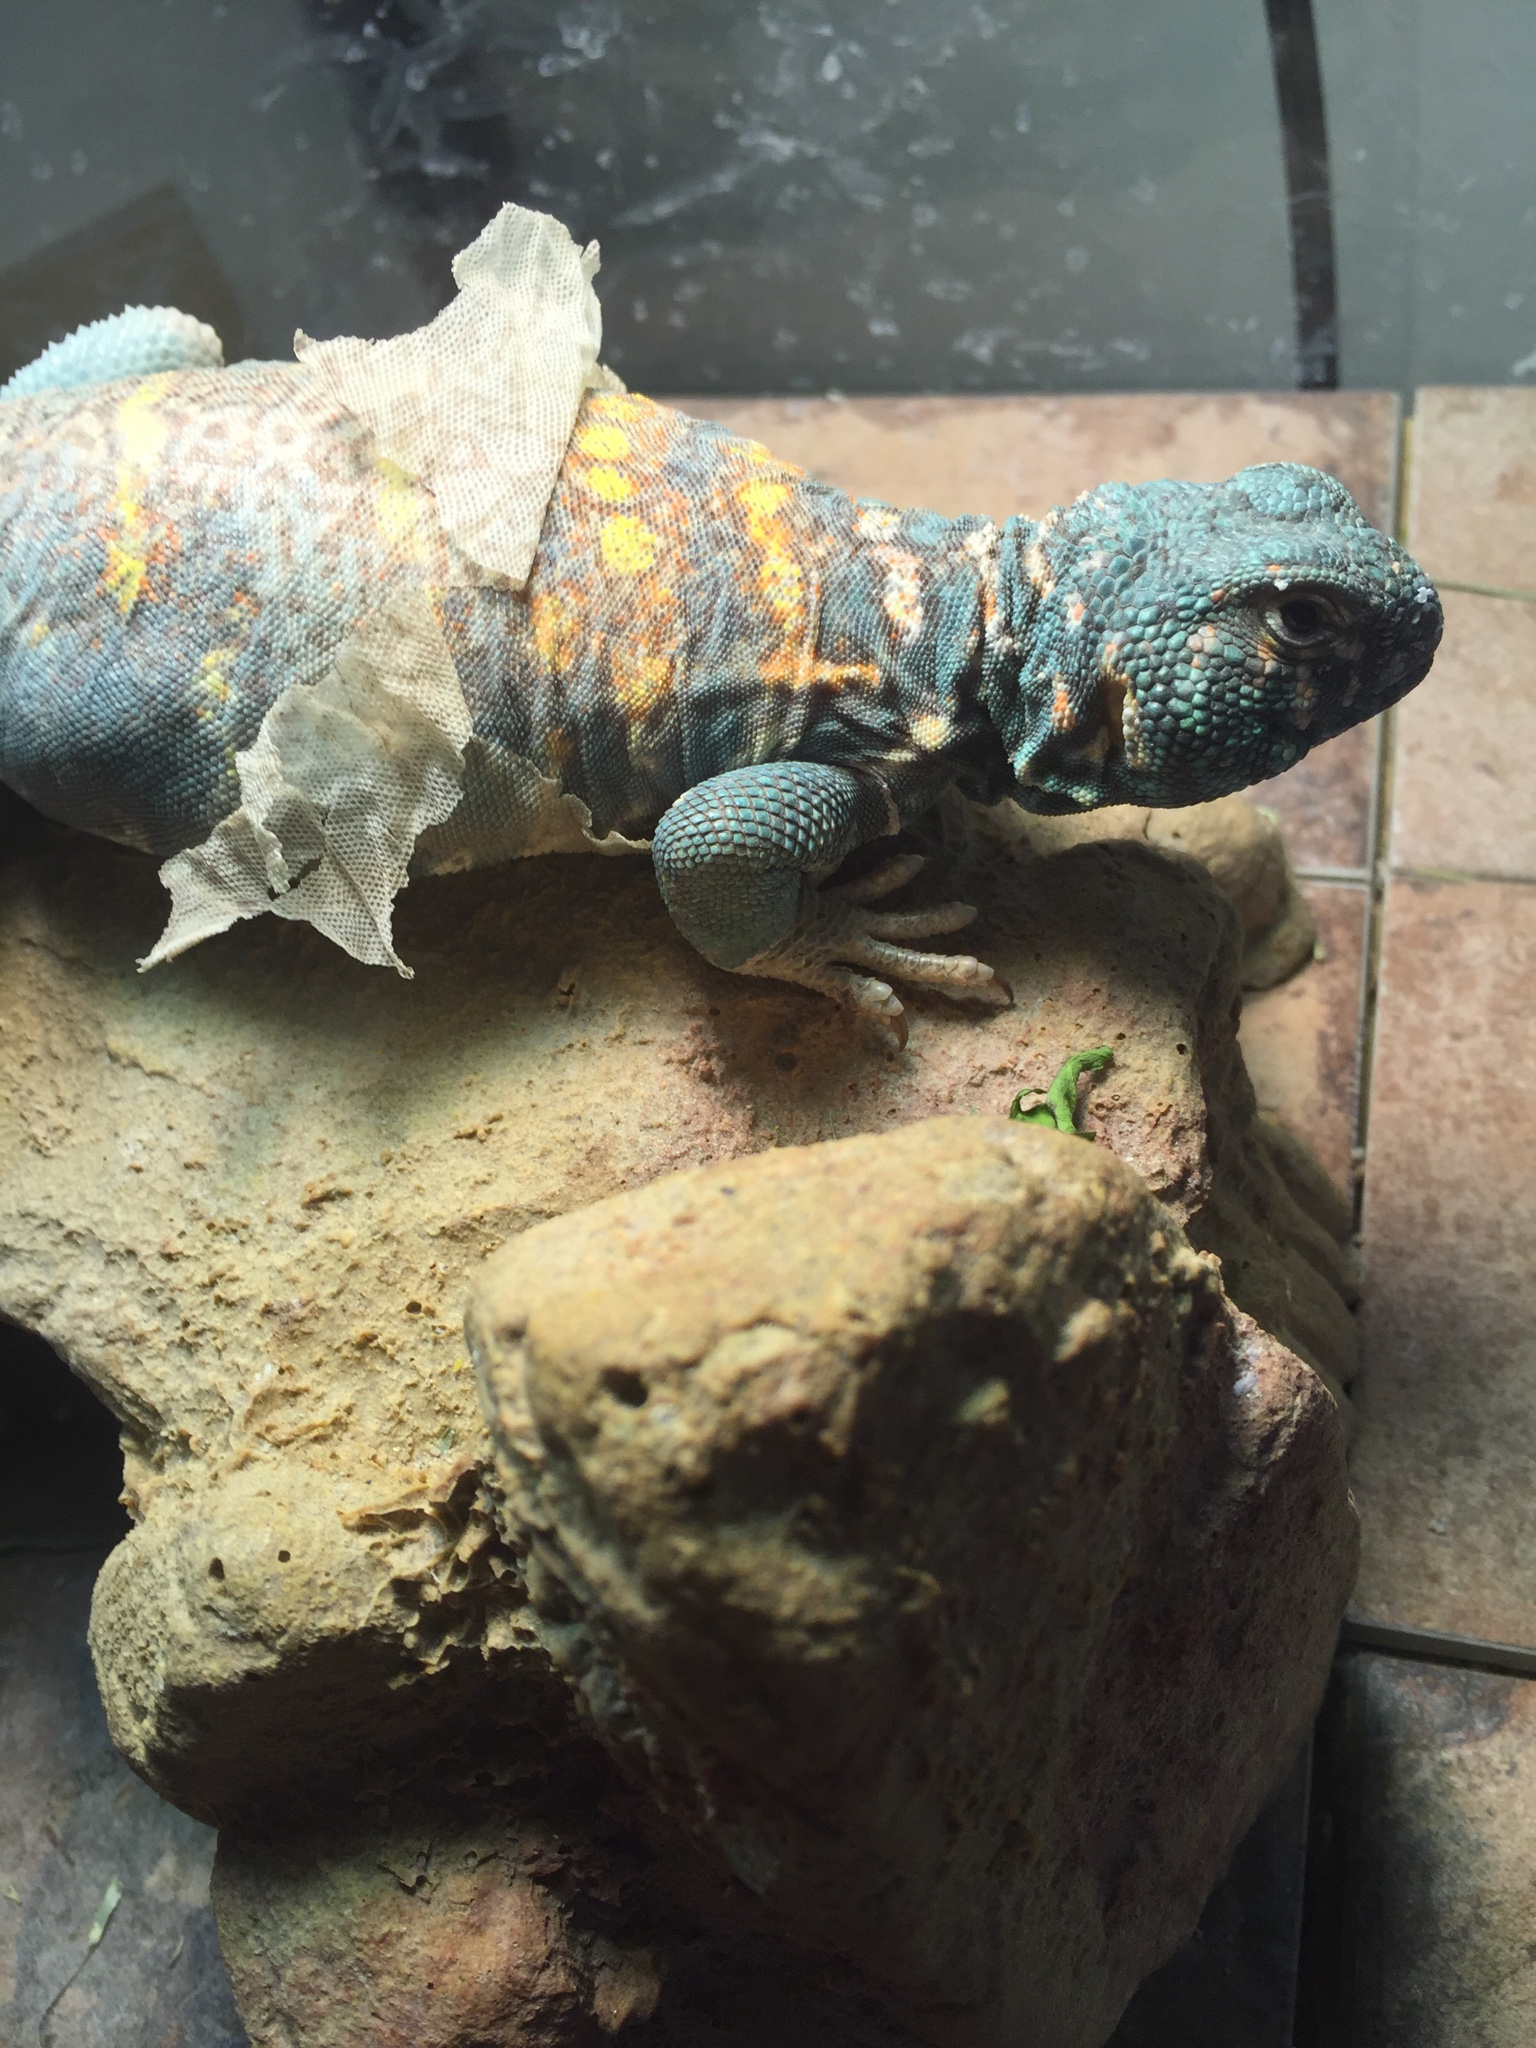 I Have A 25 Year Old 10 Inch Female Ornate Uromastyx For Sale Bought Her Along With Male While Back From Lady Who Said Theyve Been Living